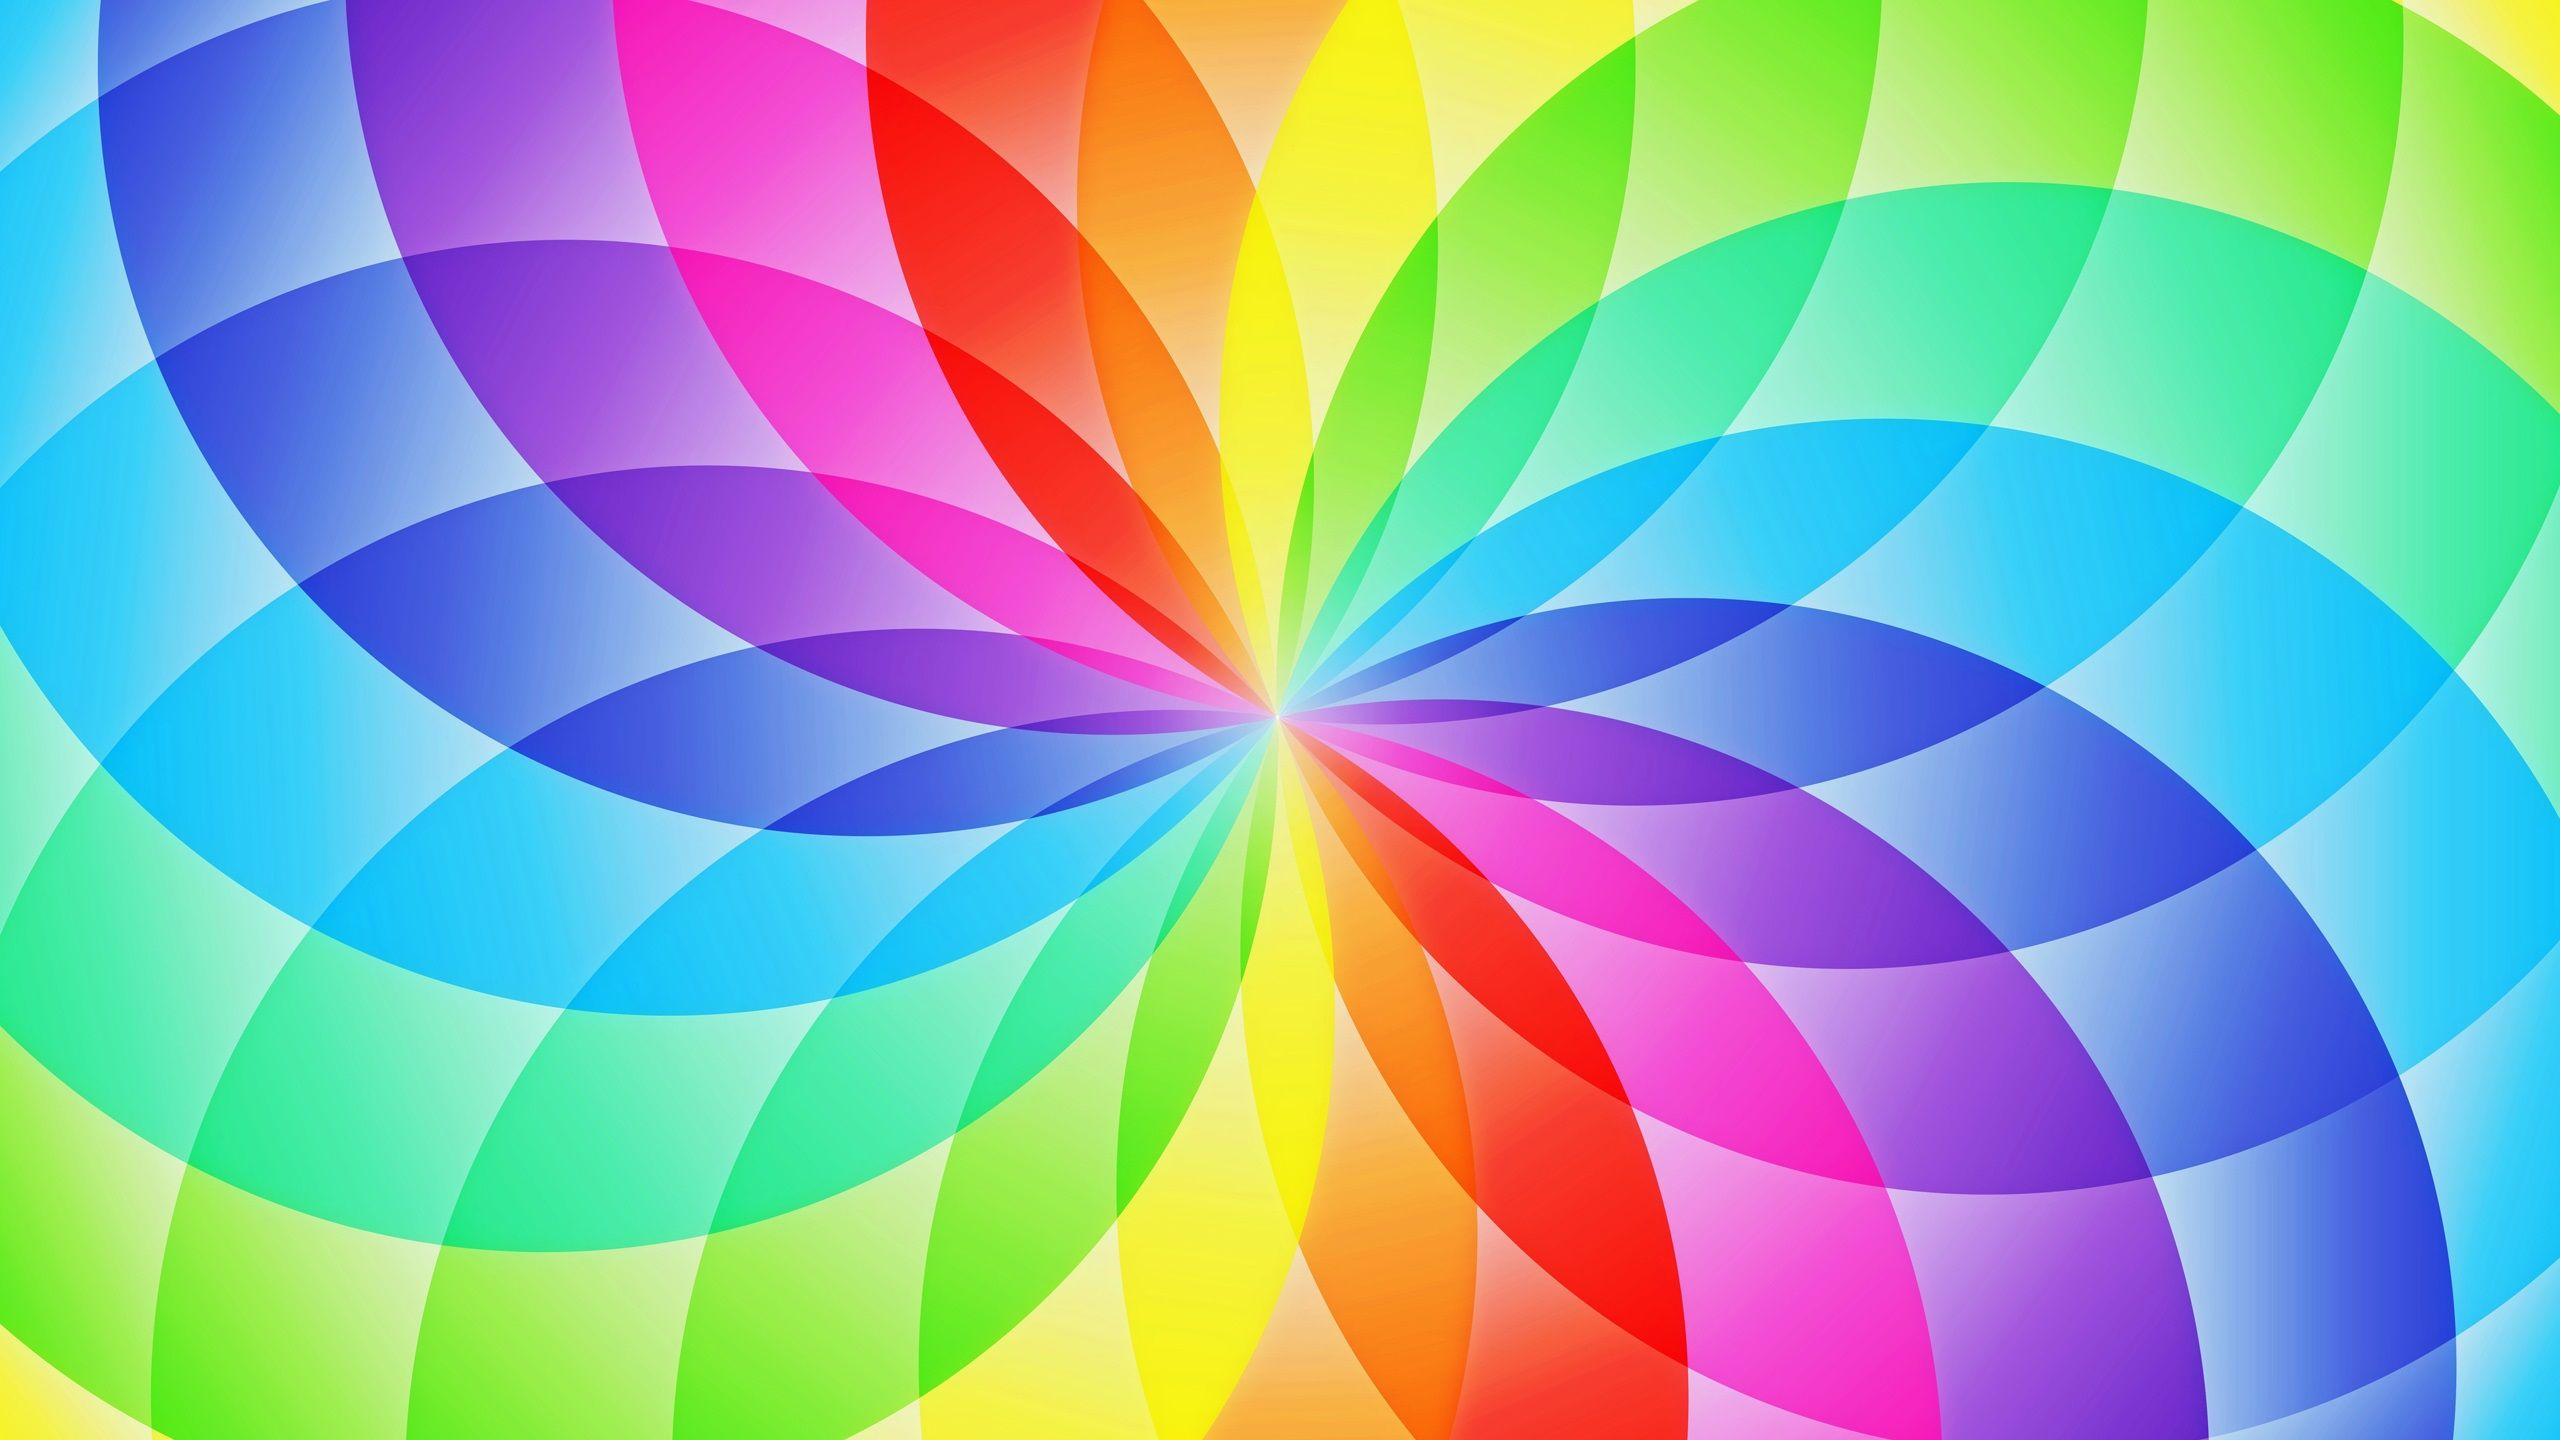 Abstract Design Circle Sector Flower Rainbow Wallpaper 2560x1440 Great For Paper Breads Rainbow Wallpaper Pink Unicorn Wallpaper Unicorn Wallpaper